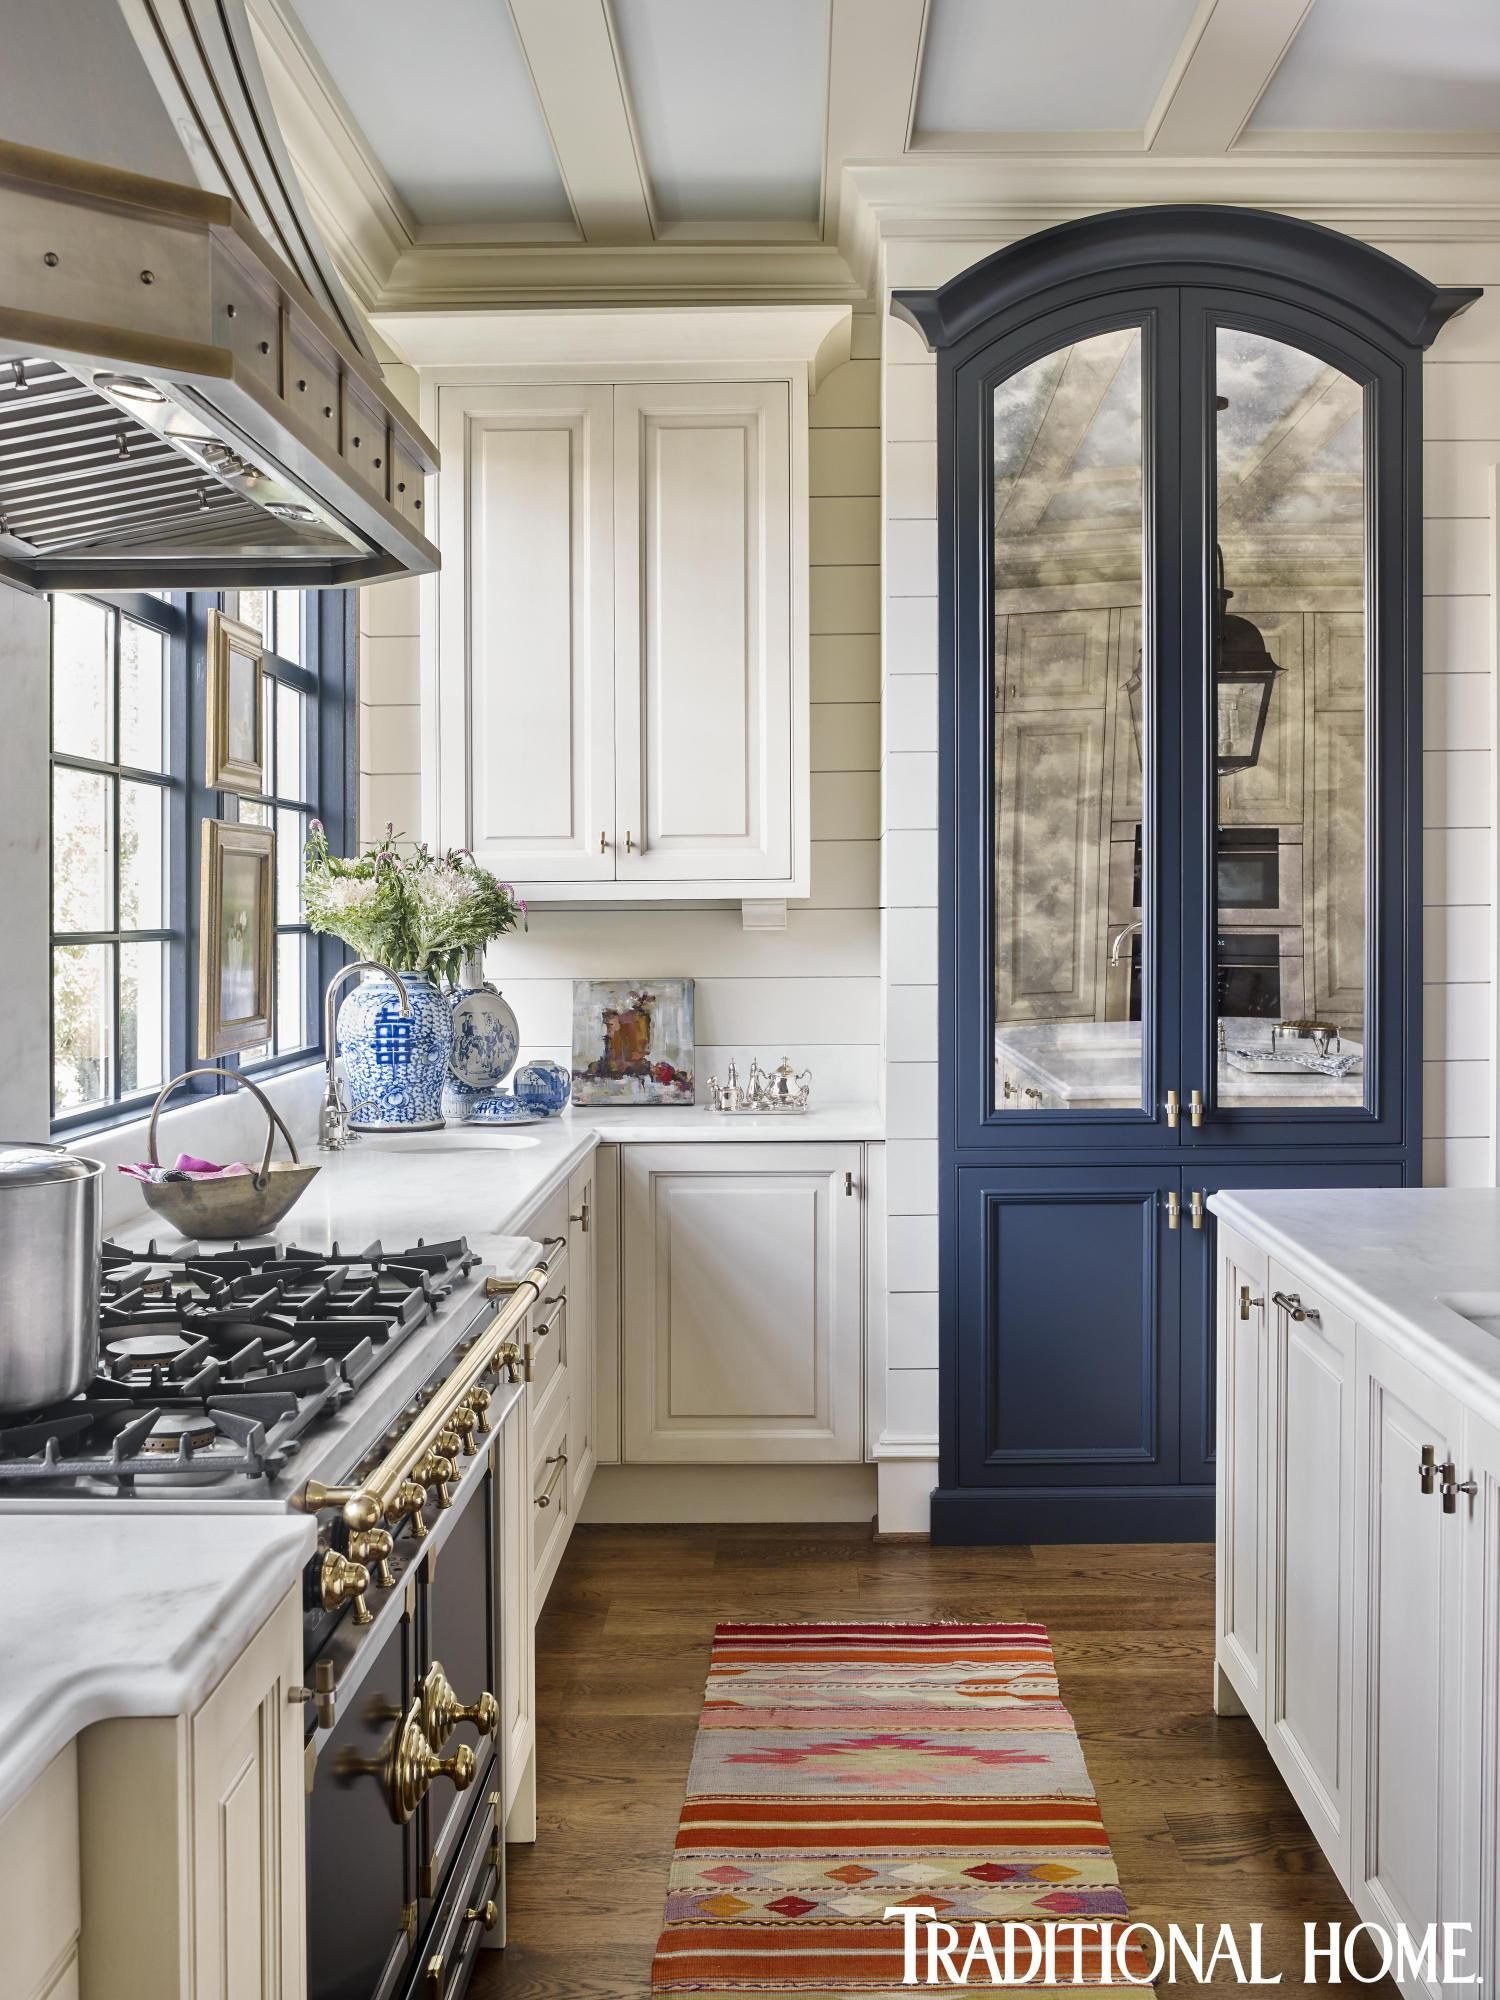 Modern Twists On The Traditional Kitchen In 2020 With Images